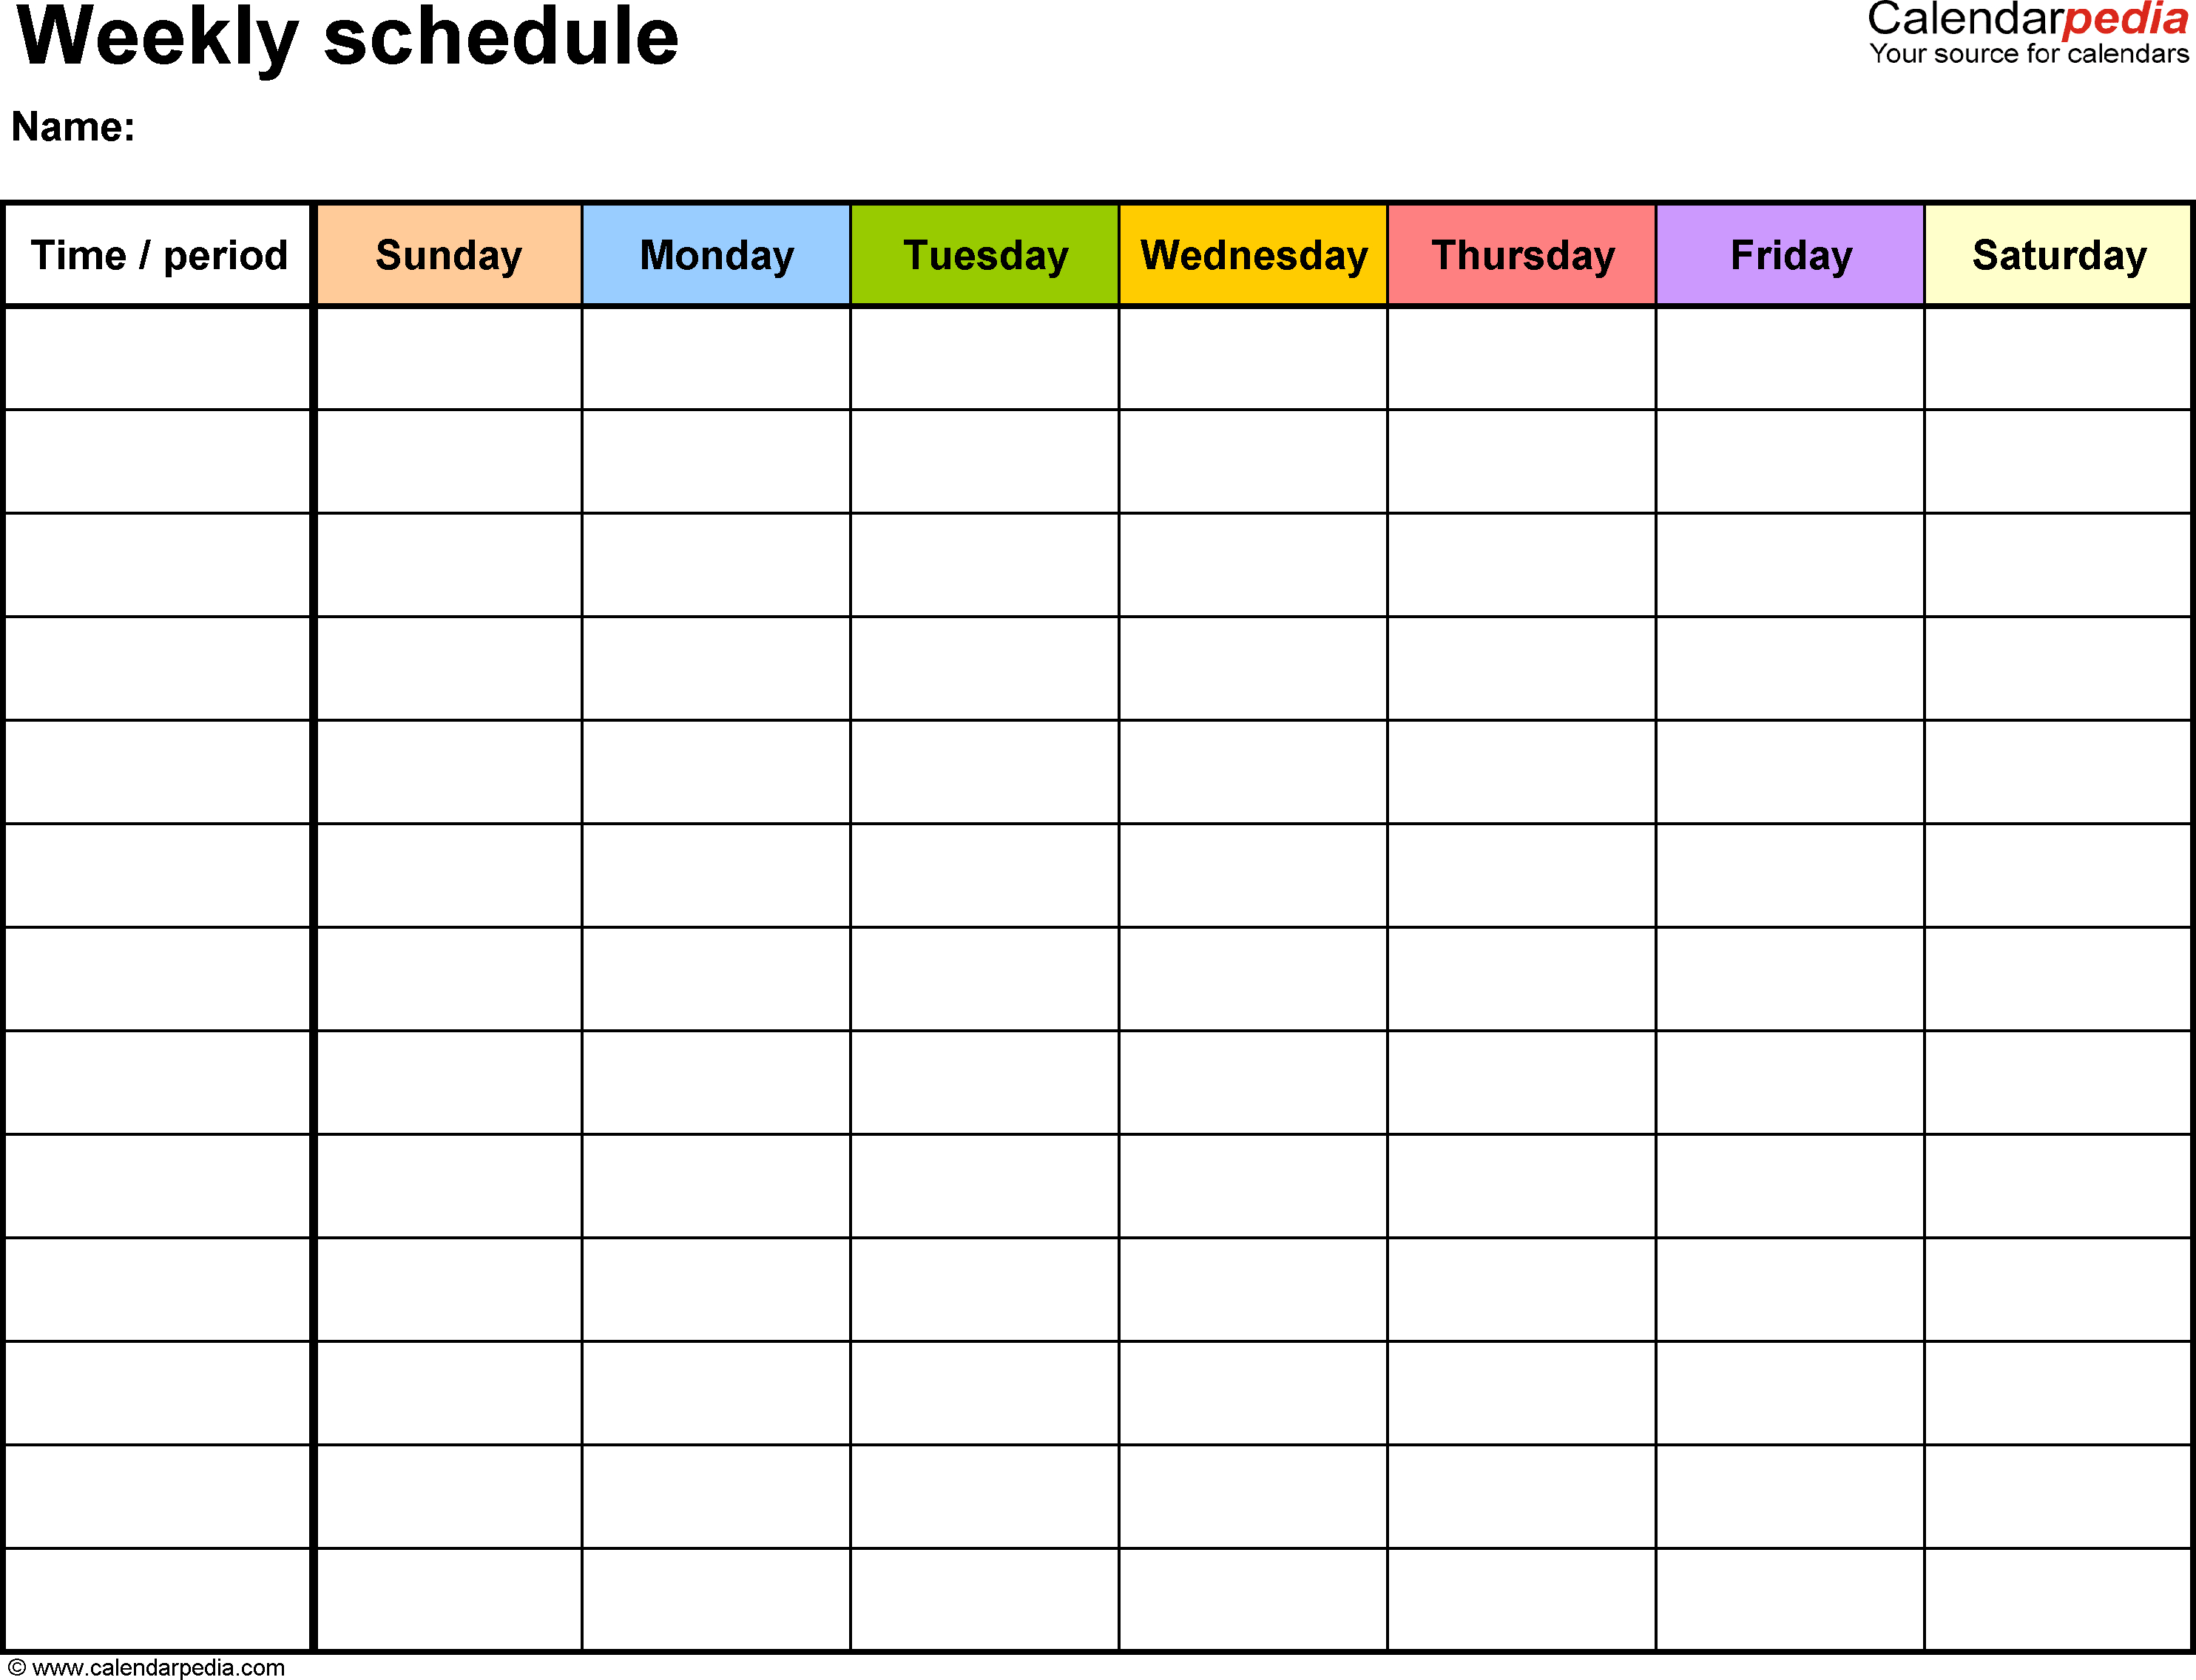 Free Weekly Schedule Templates For Word - 18 Templates inside 7 Day Calendar Template Free